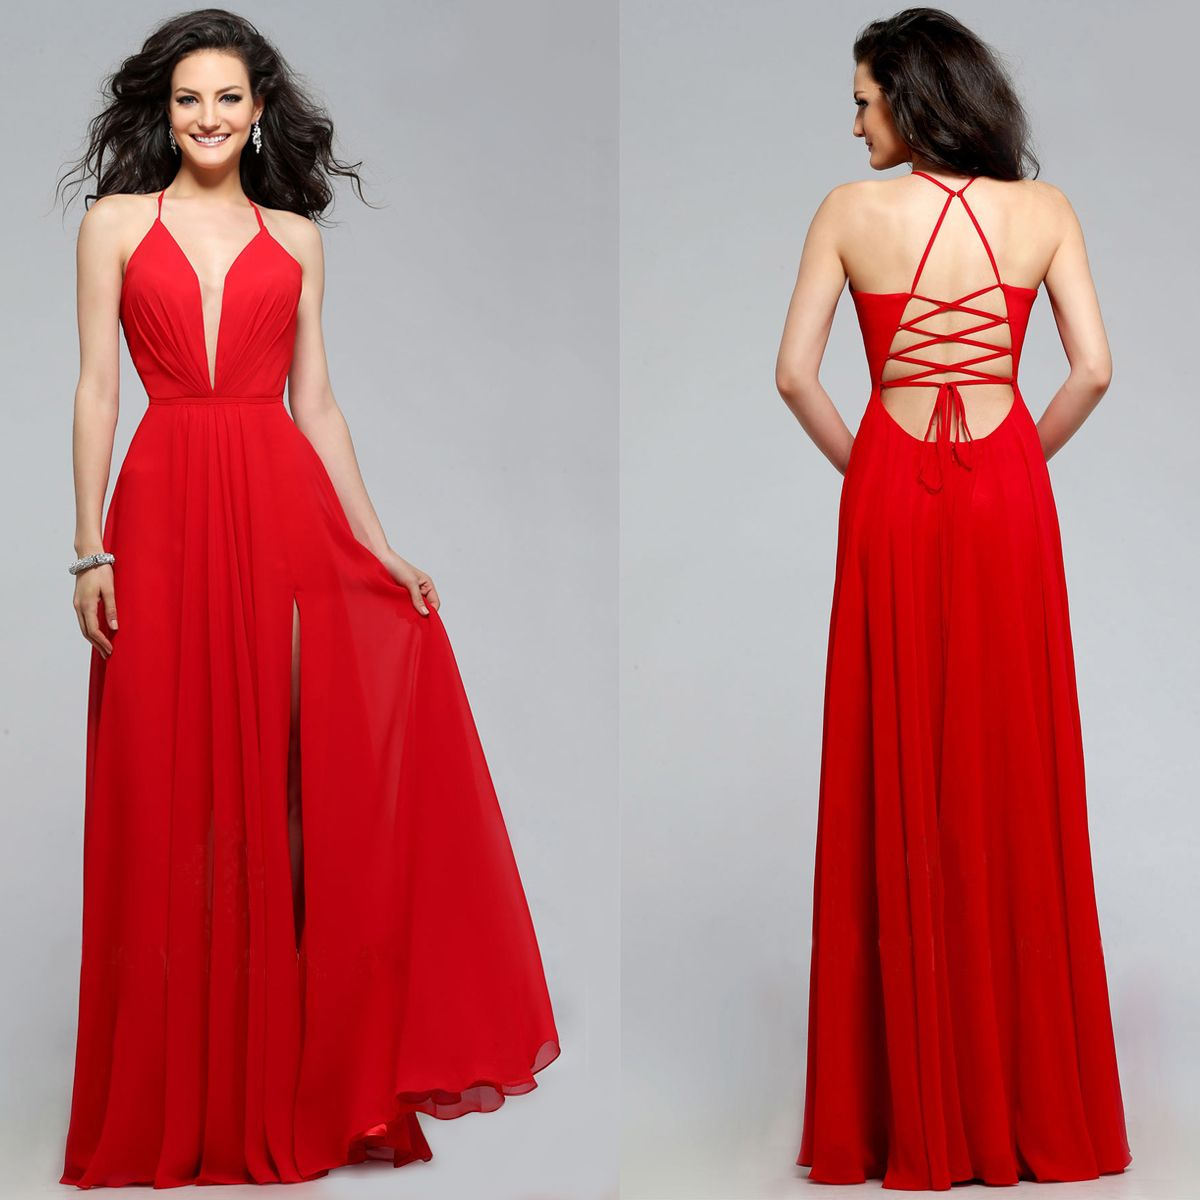 Faviana Low V-Neck Corset Back Prom Dress in 2019  9e494f077